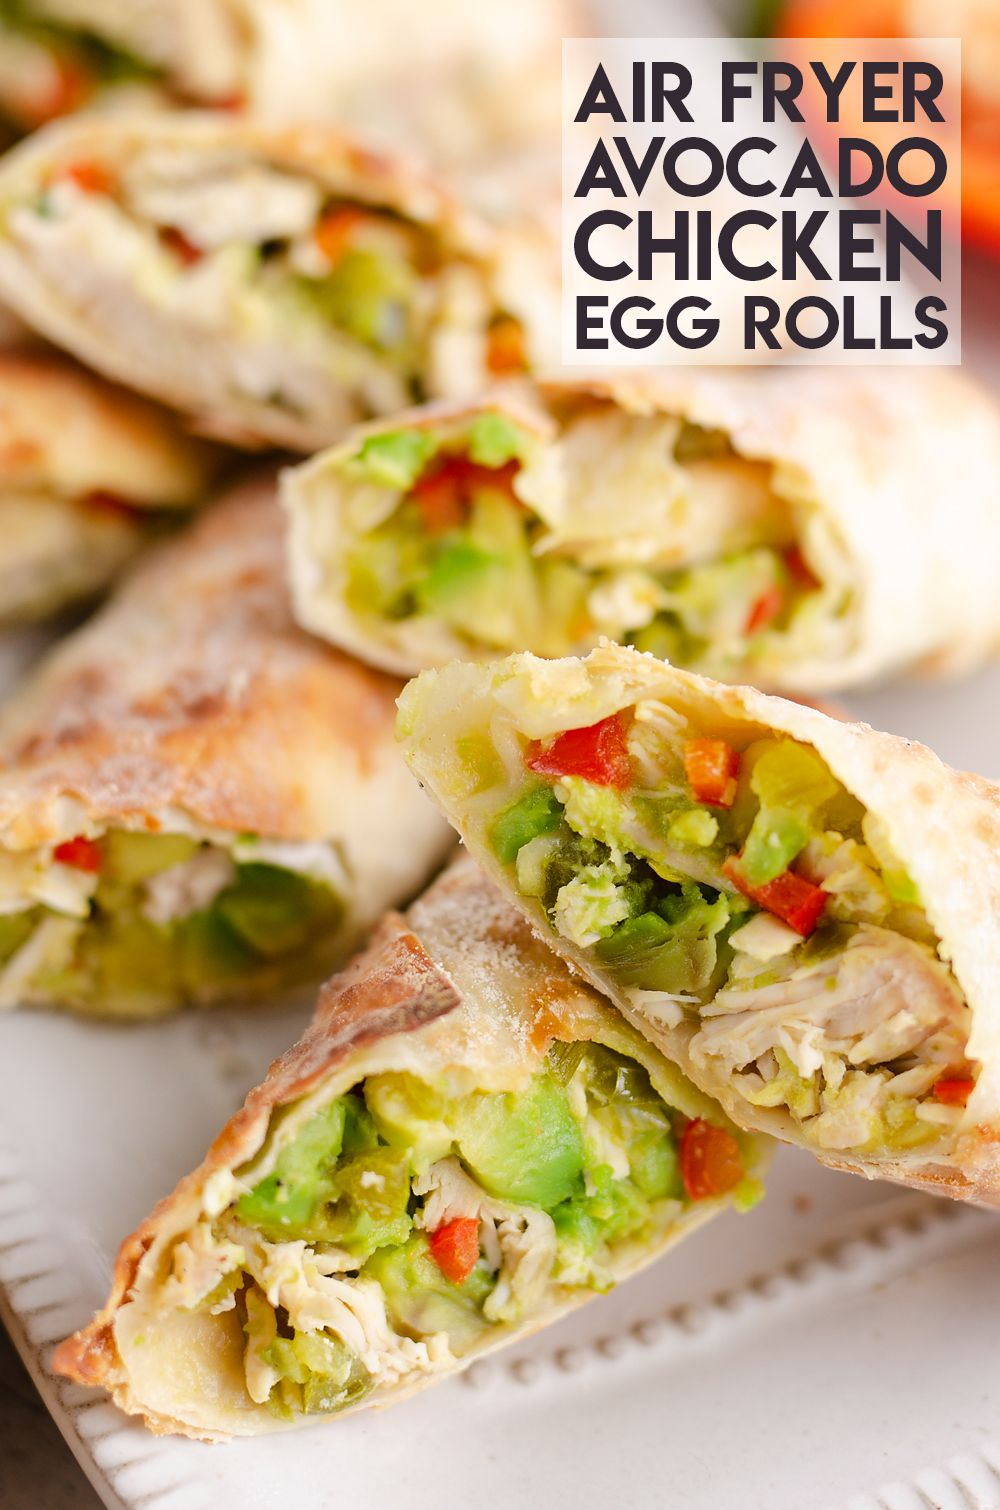 Air Fryer Avocado Chicken Egg Rolls are and easy and